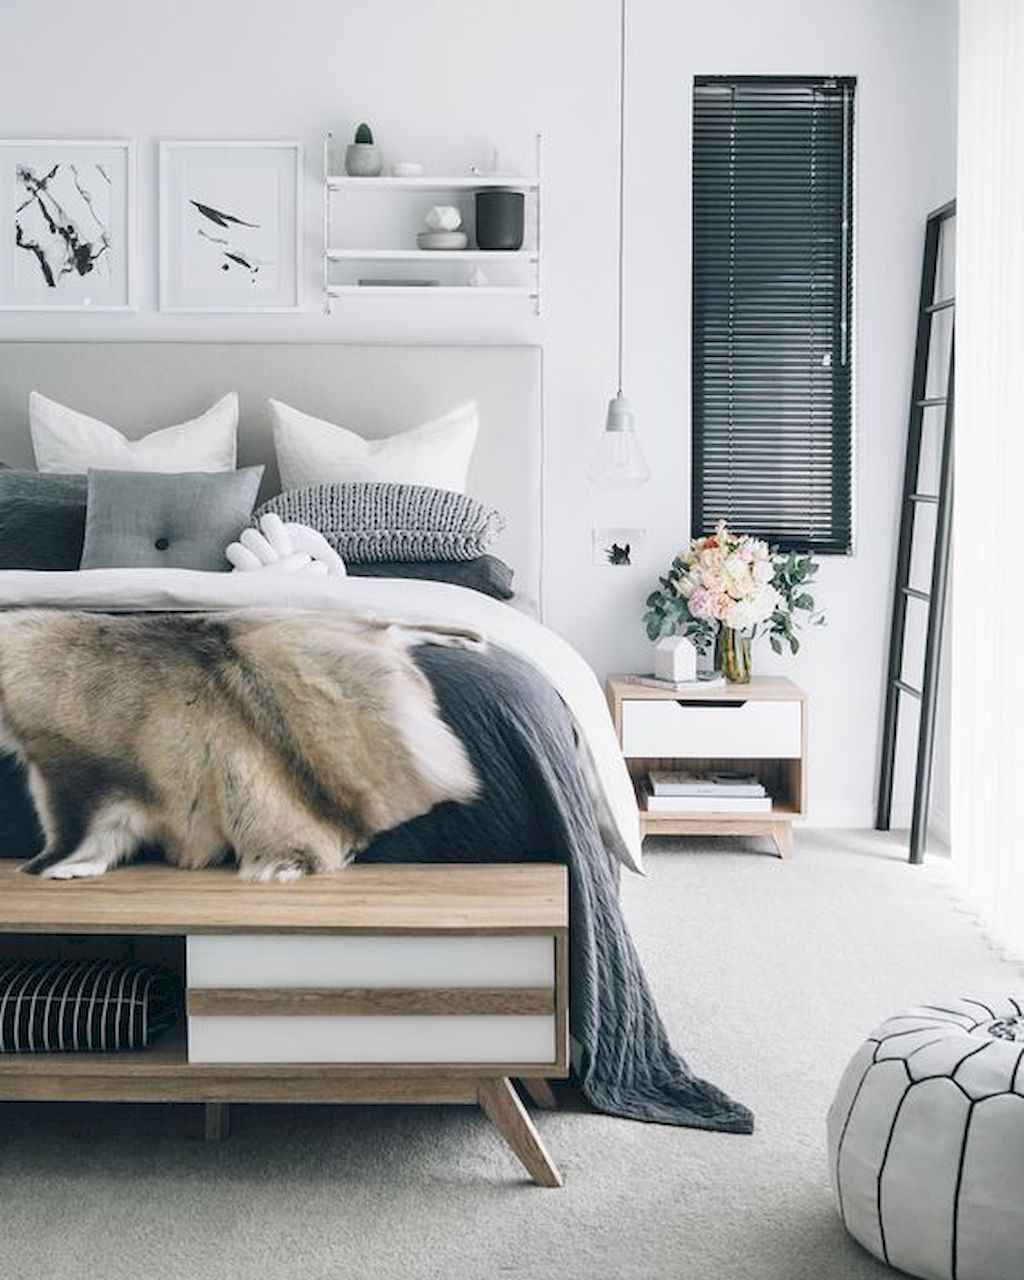 Awesome bedroom decoration ideas (48)